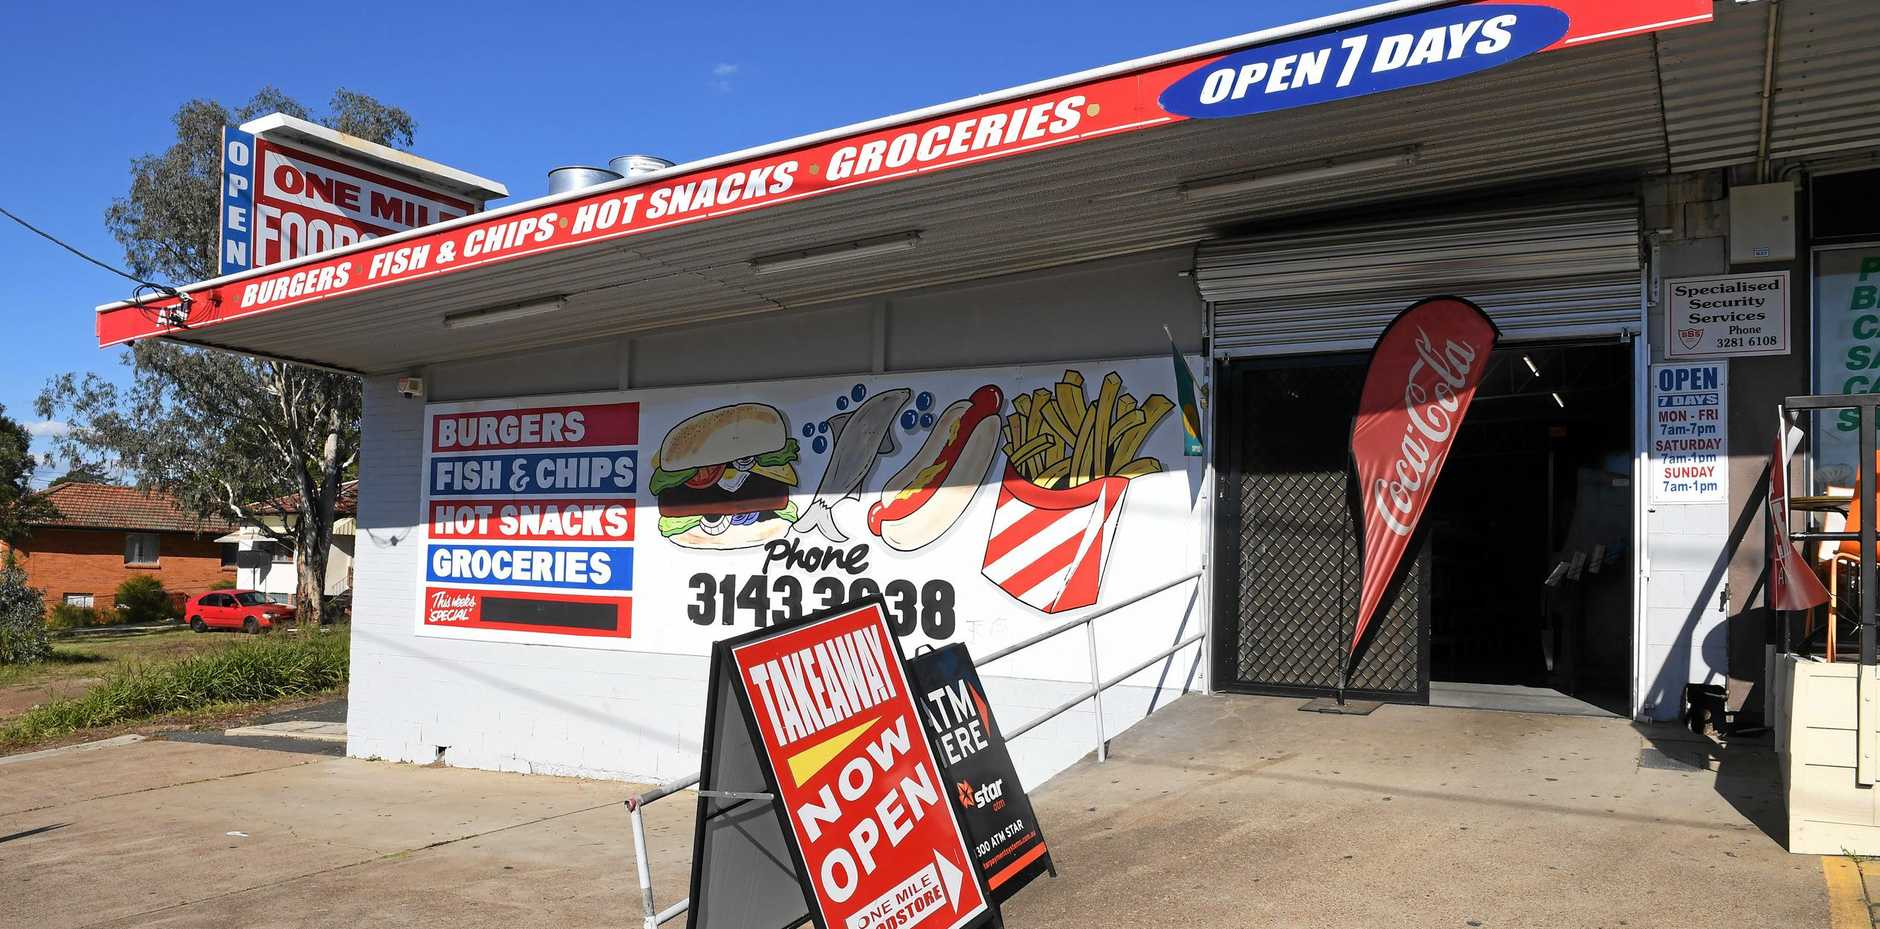 UP FOR SALE: The One Mile Foodstore will go under the hammer on July 5.